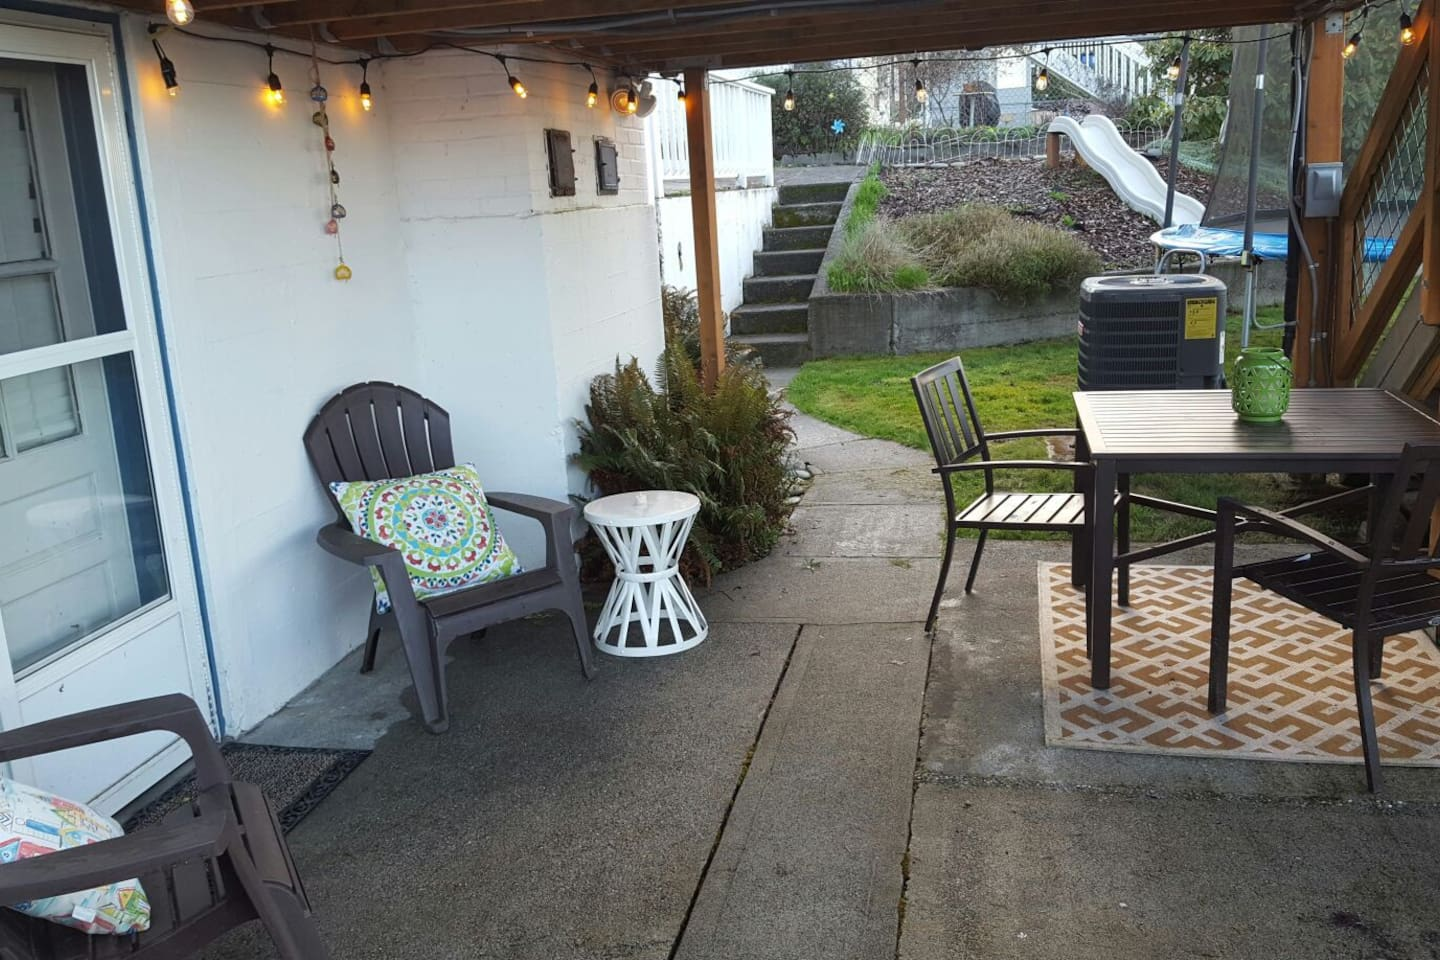 A fun daytime/evening patio space